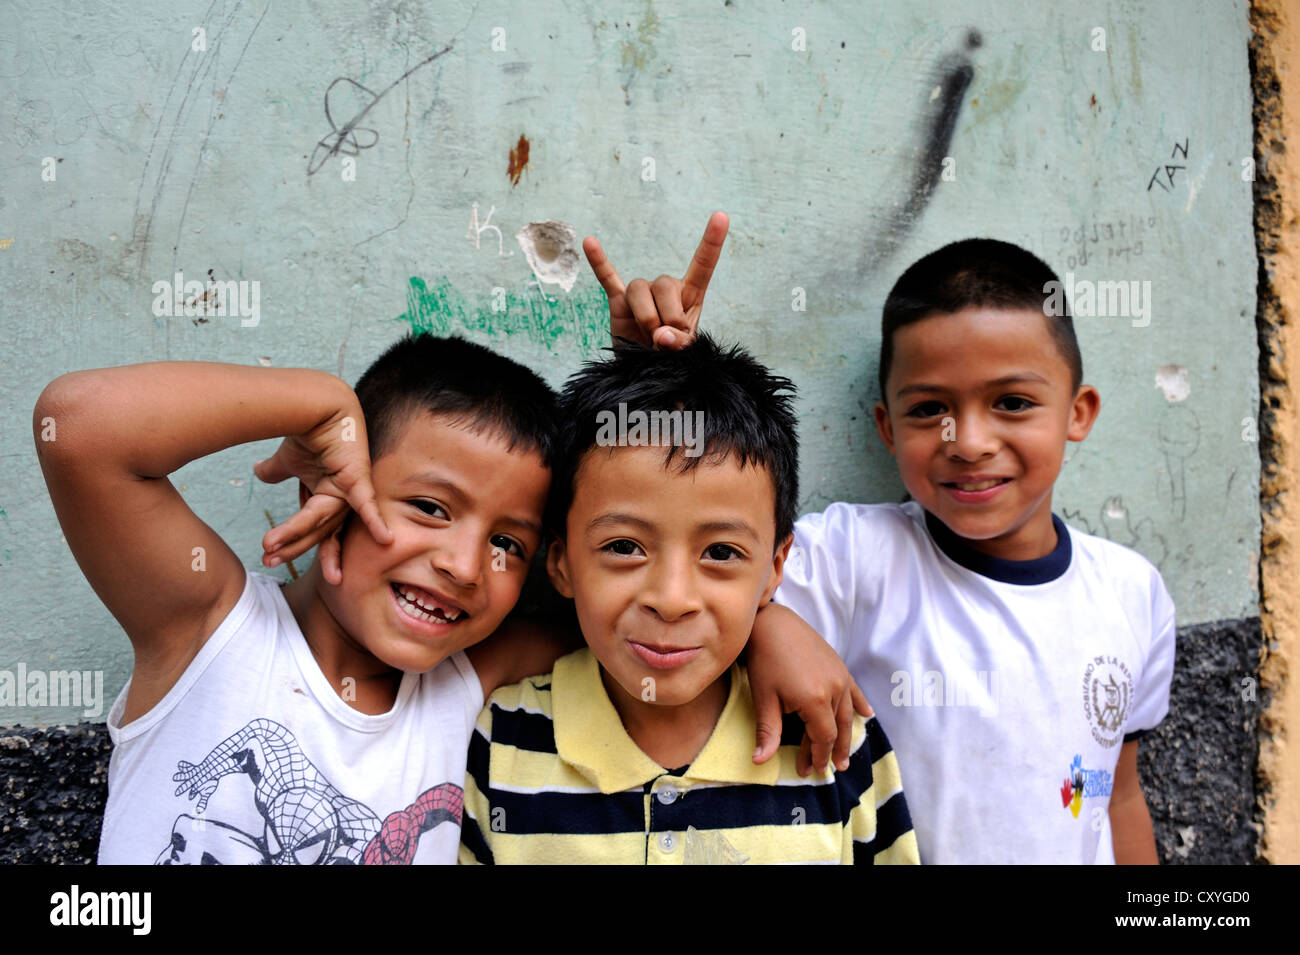 Bullet holes in the walls of houses and three smiling children, the poor neighborhood of El Esfuerzo is being controlled - Stock Image